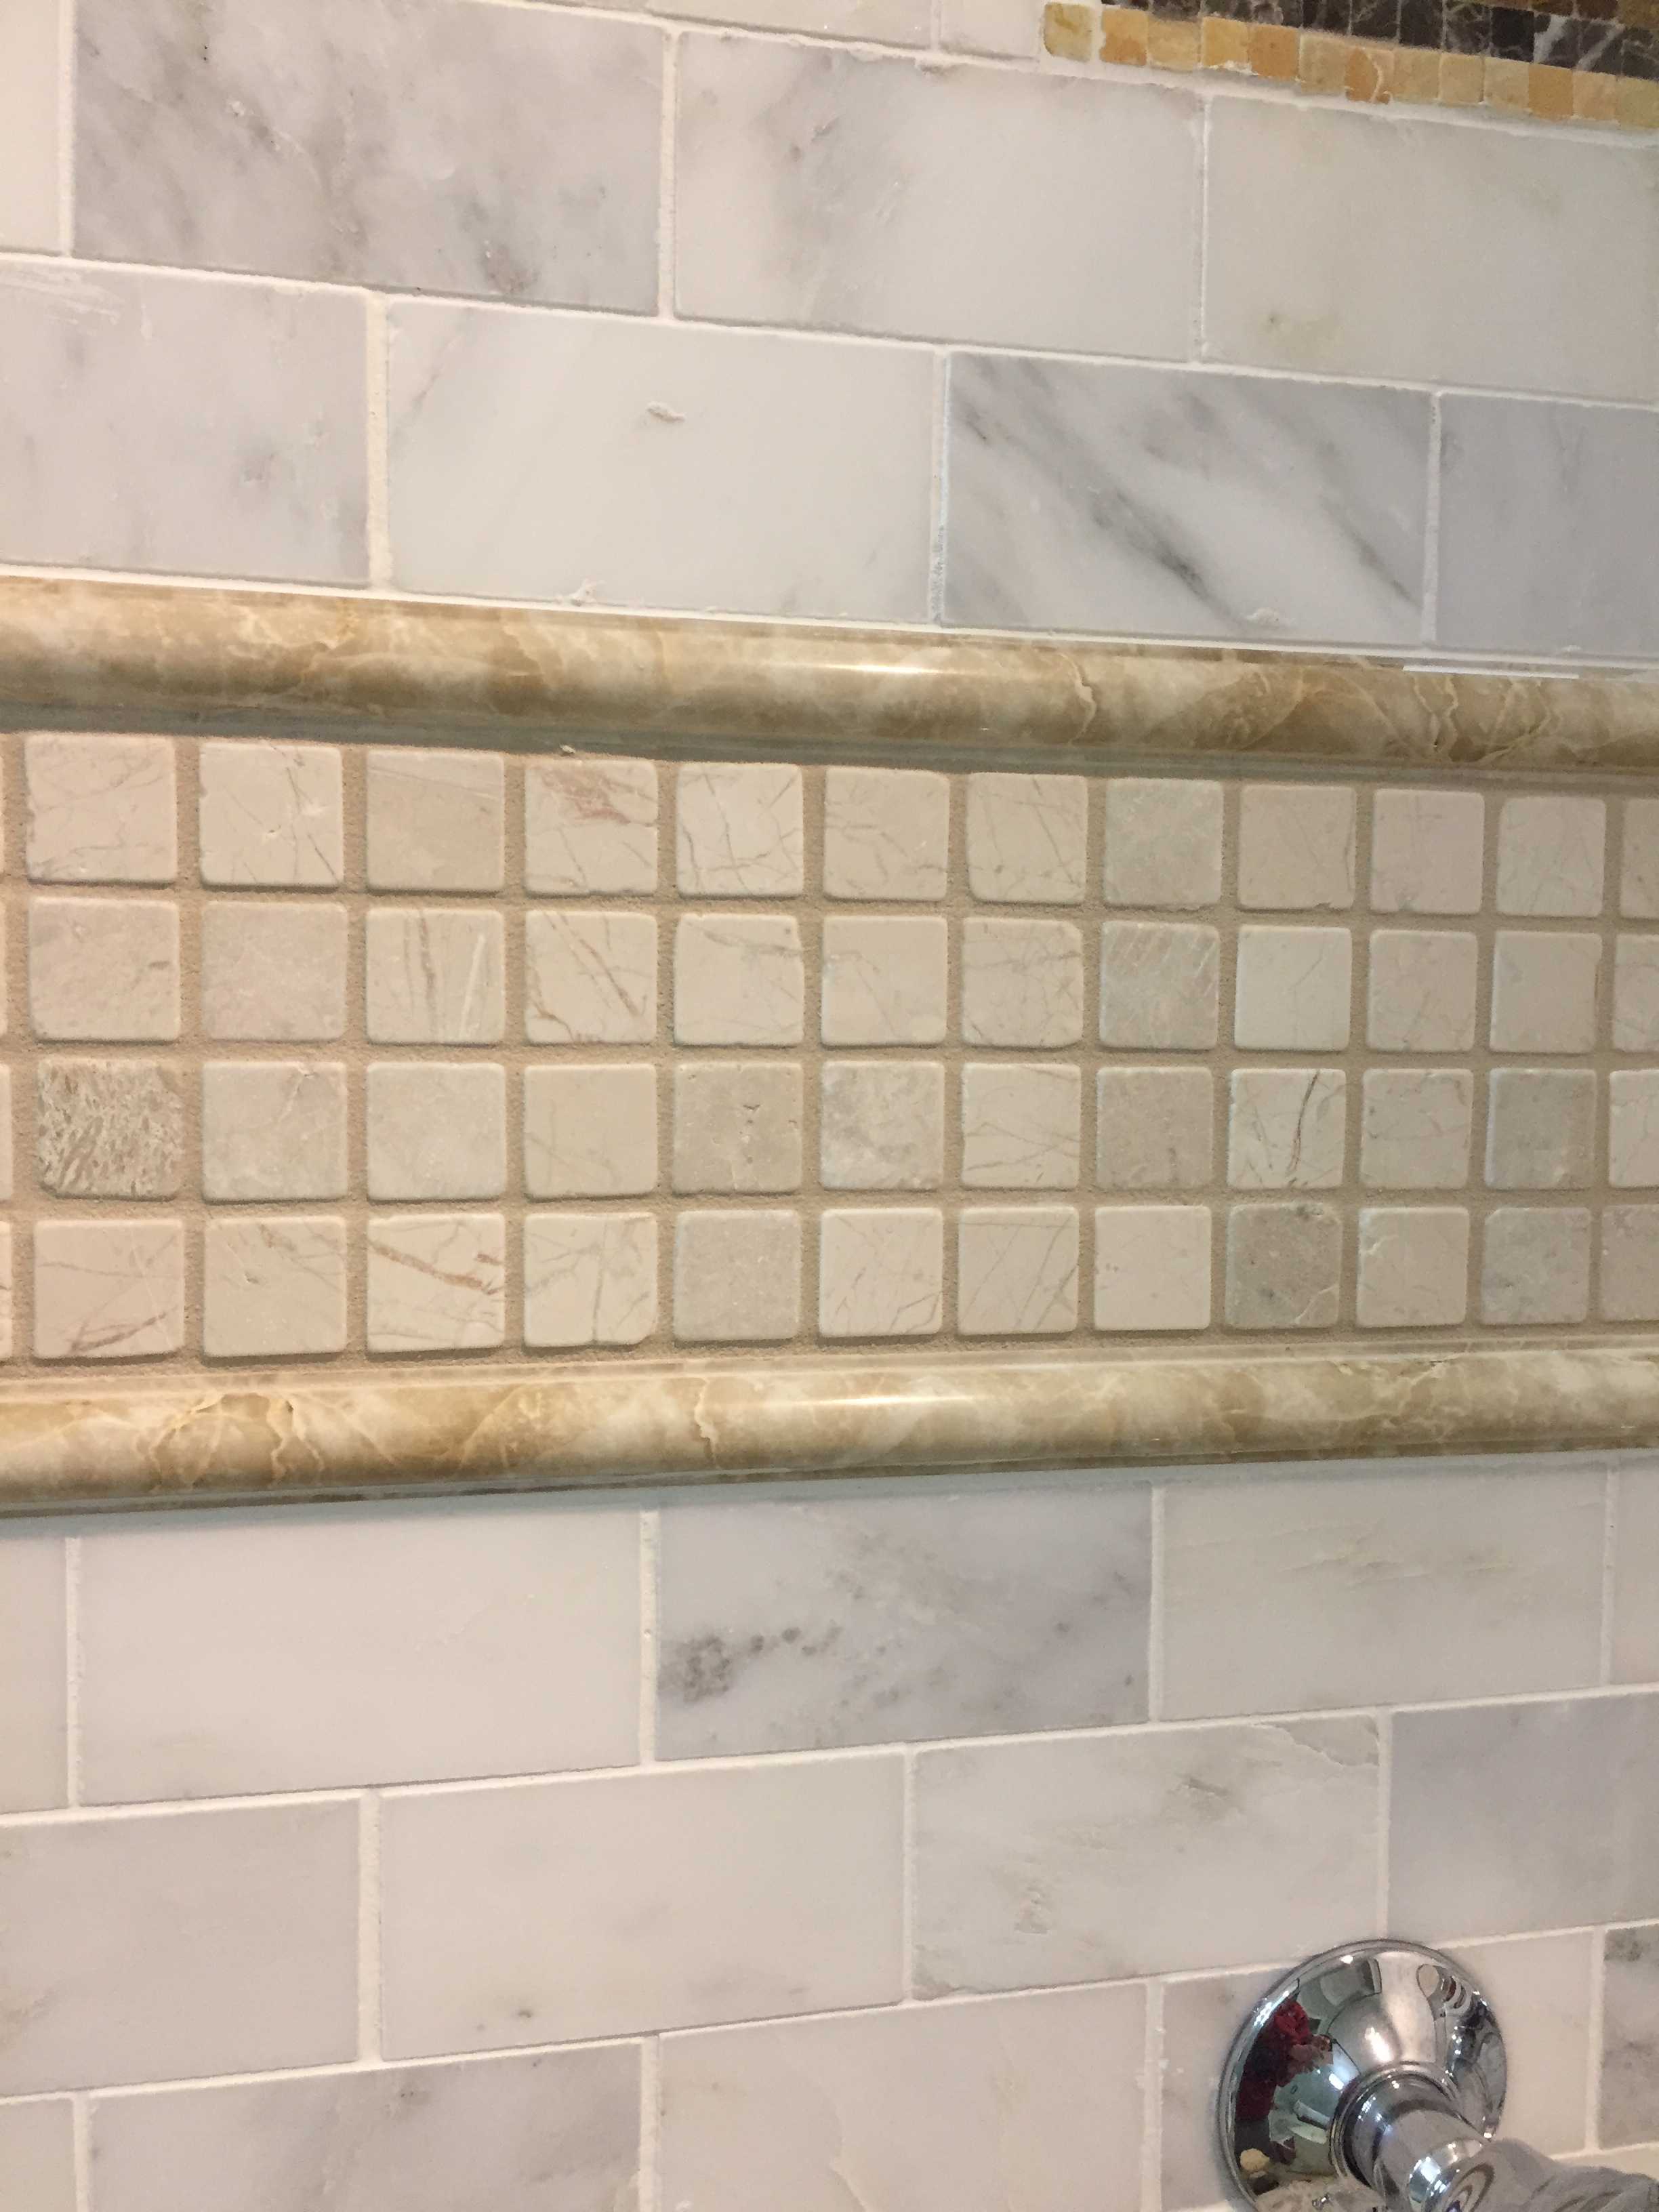 Marble Mosaic Tile Polished Genuin Stone Mosaic Flooring Backsplash Shower Bath Ebay